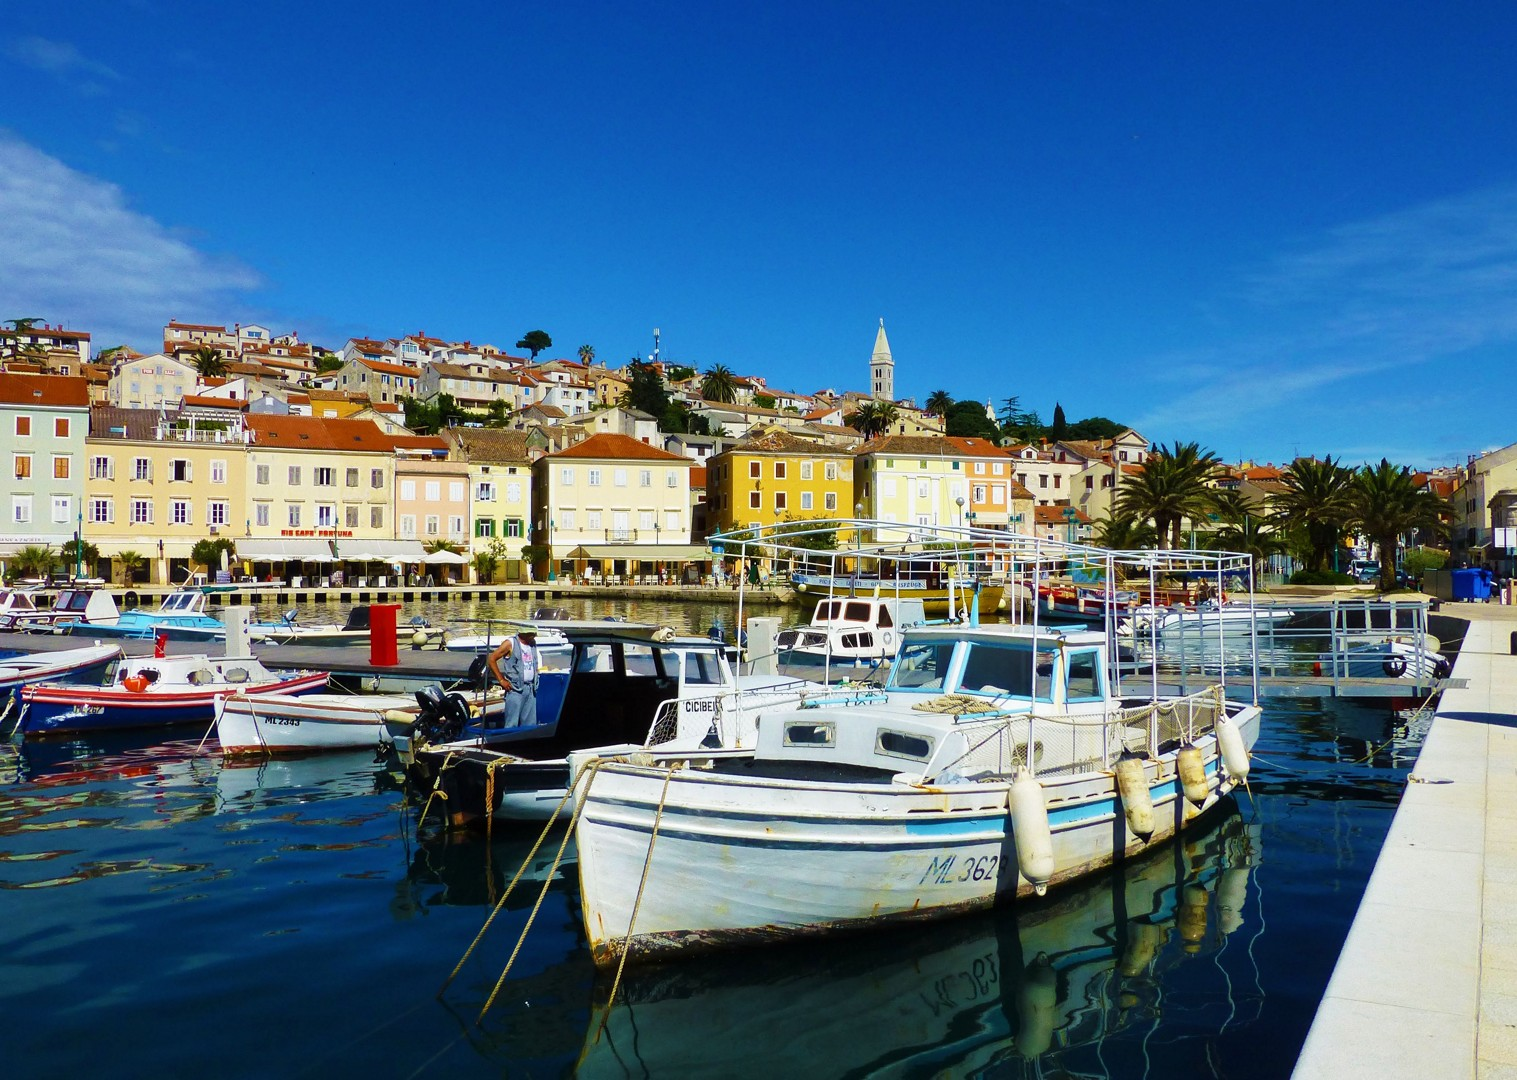 mali-losinj-cycling-leigure-boat-comfort-holiday-croatia.jpg - NEW! Croatia - Kvarner Bay Plus - Leisure Cycling